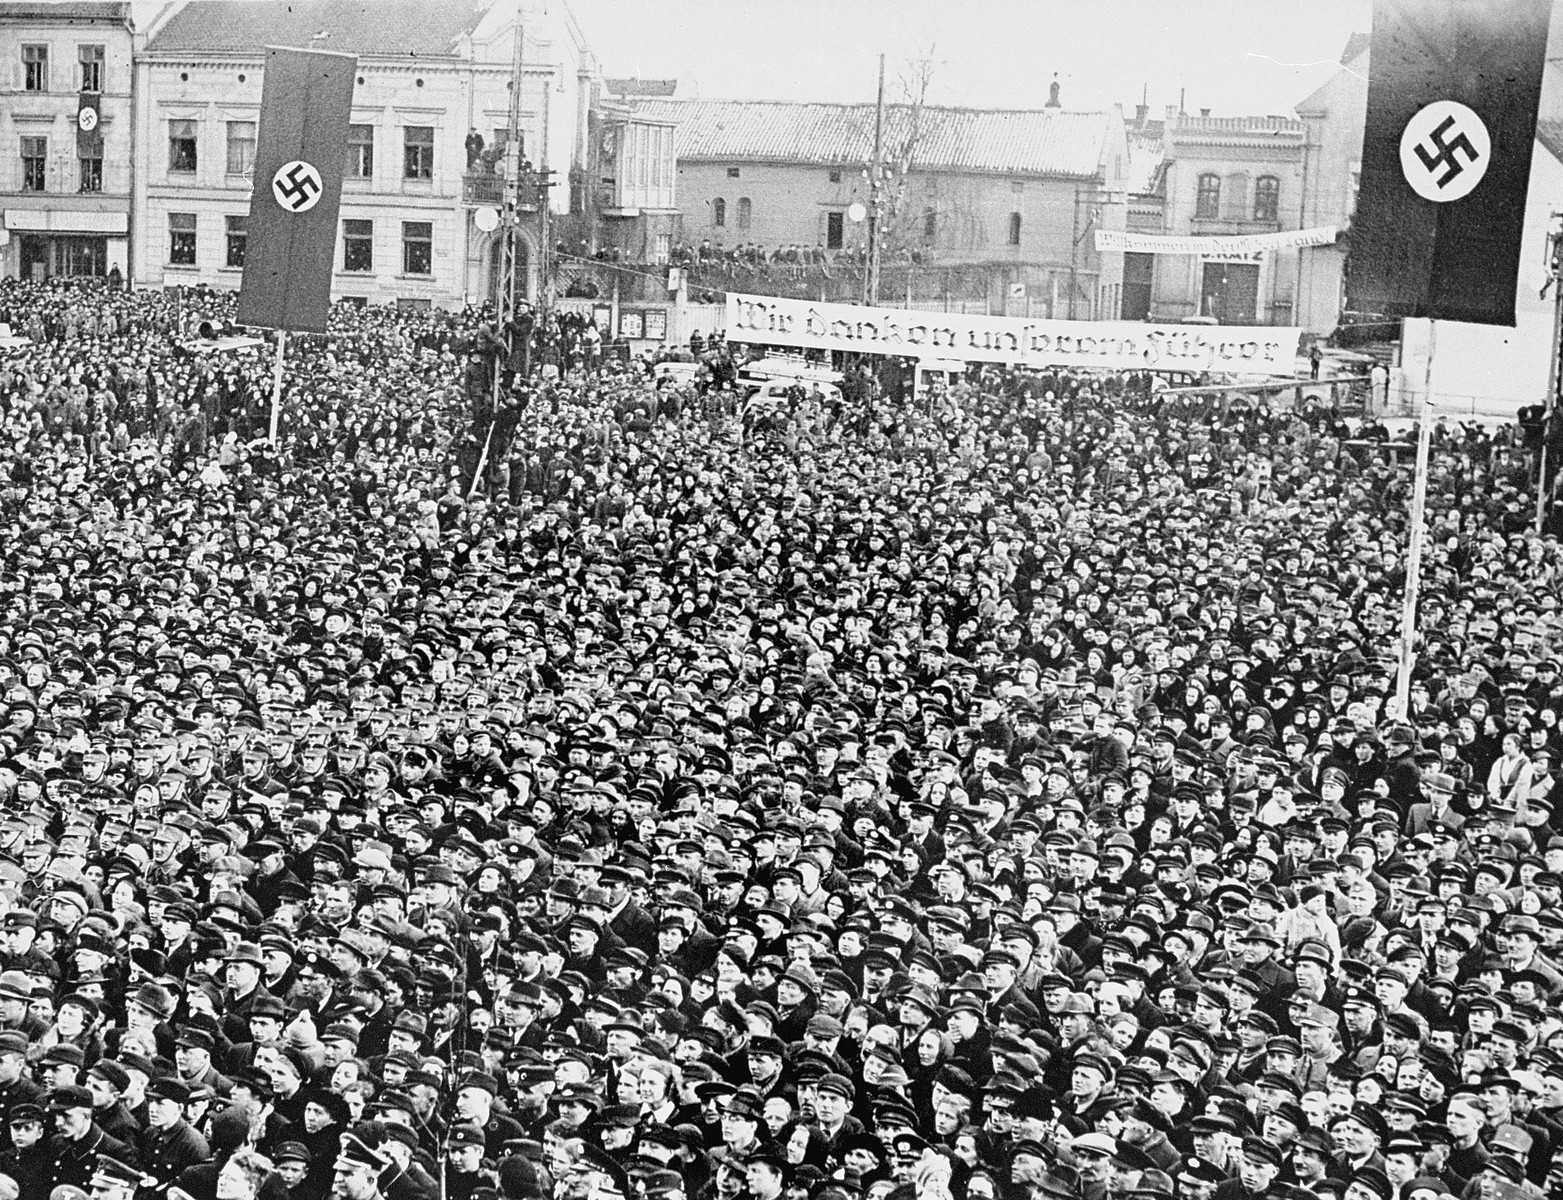 A huge crowd of Germans in Danzig assemble to hear a speech by Adolf Hitler.